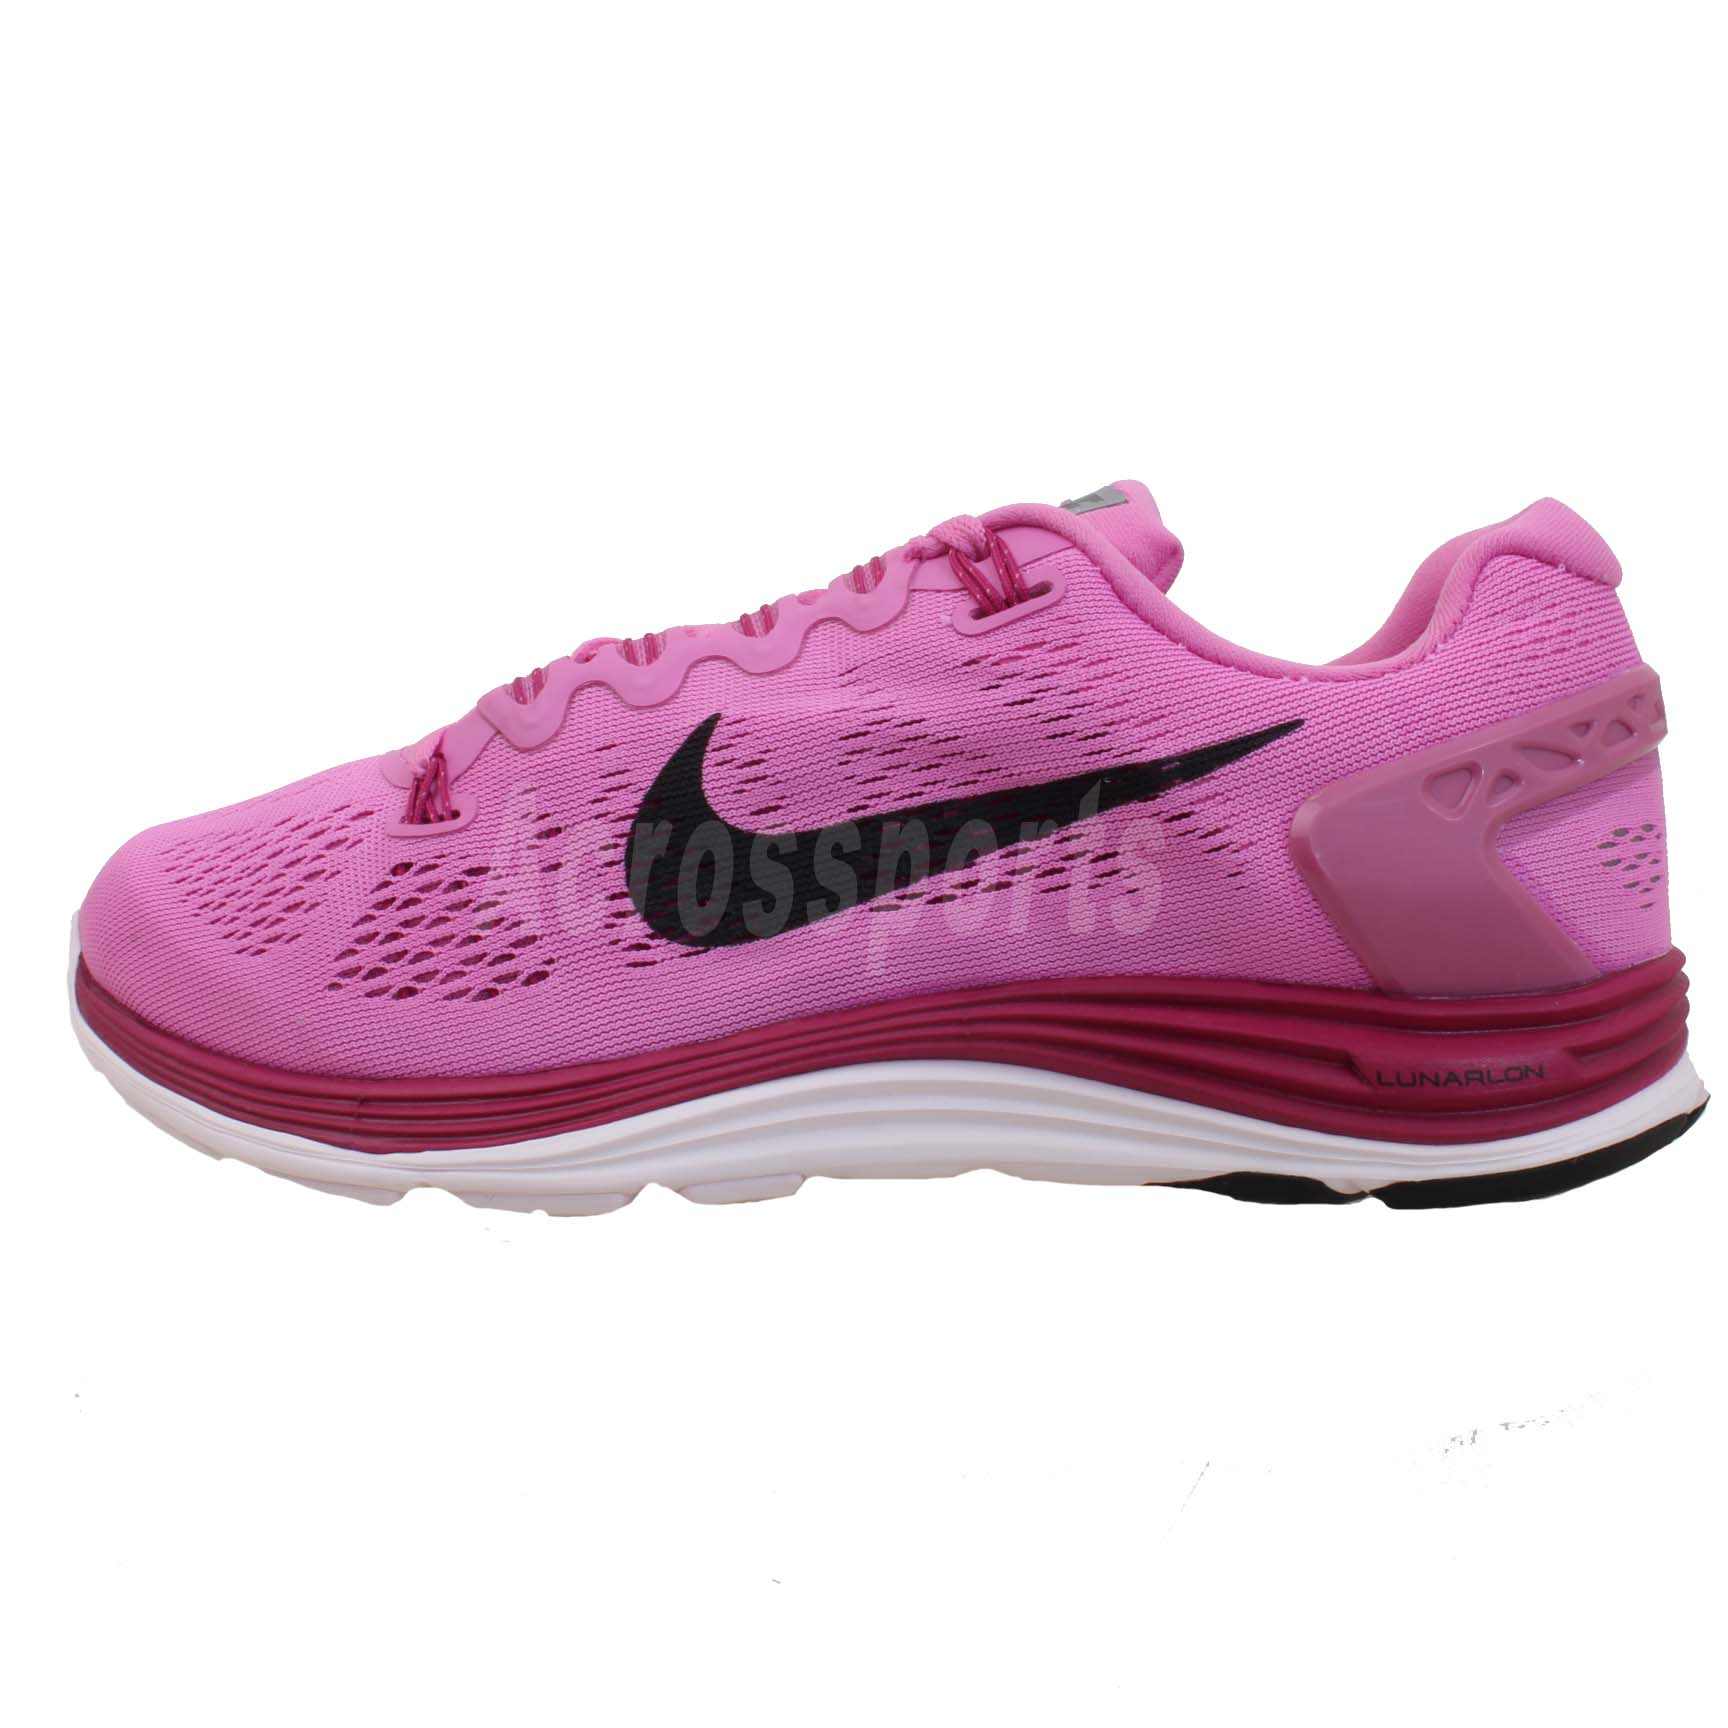 Beautiful US Womens Open Champion Michelle Wie Will Design Her Own Shoes And Wear Several Different Custom Colorways  Designers Incorporated A Lightweight Fulllength Nike Lunarlon Foam In The Midsole To Ensure Athletes Stay Comfortable